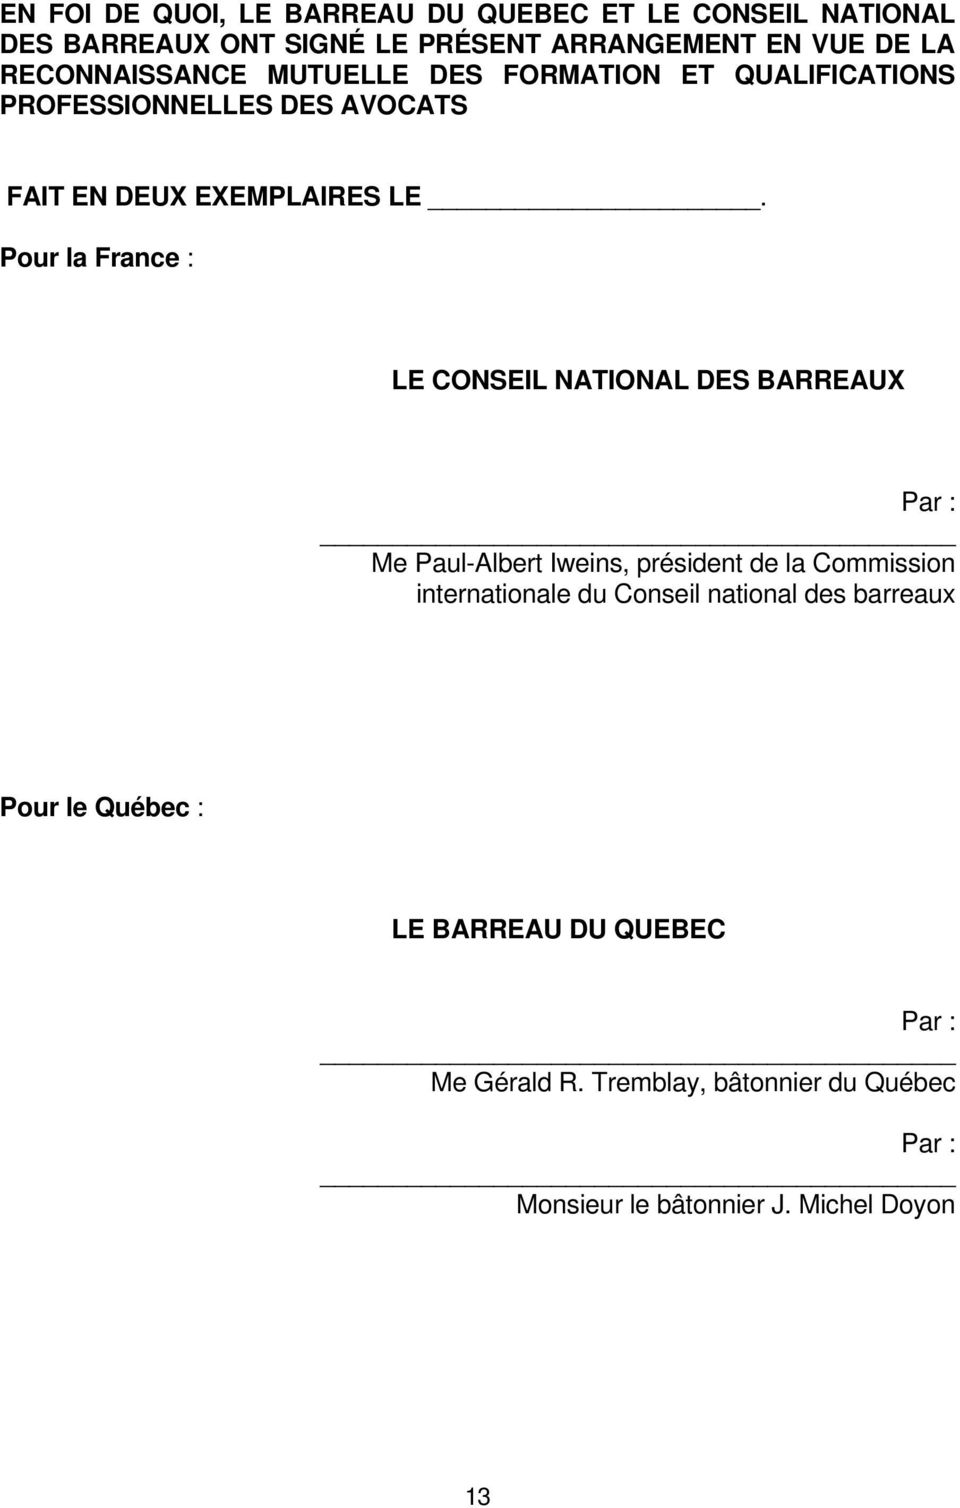 Pour la France : LE CONSEIL NATIONAL DES BARREAUX Par : Me Paul-Albert Iweins, président de la Commission internationale du